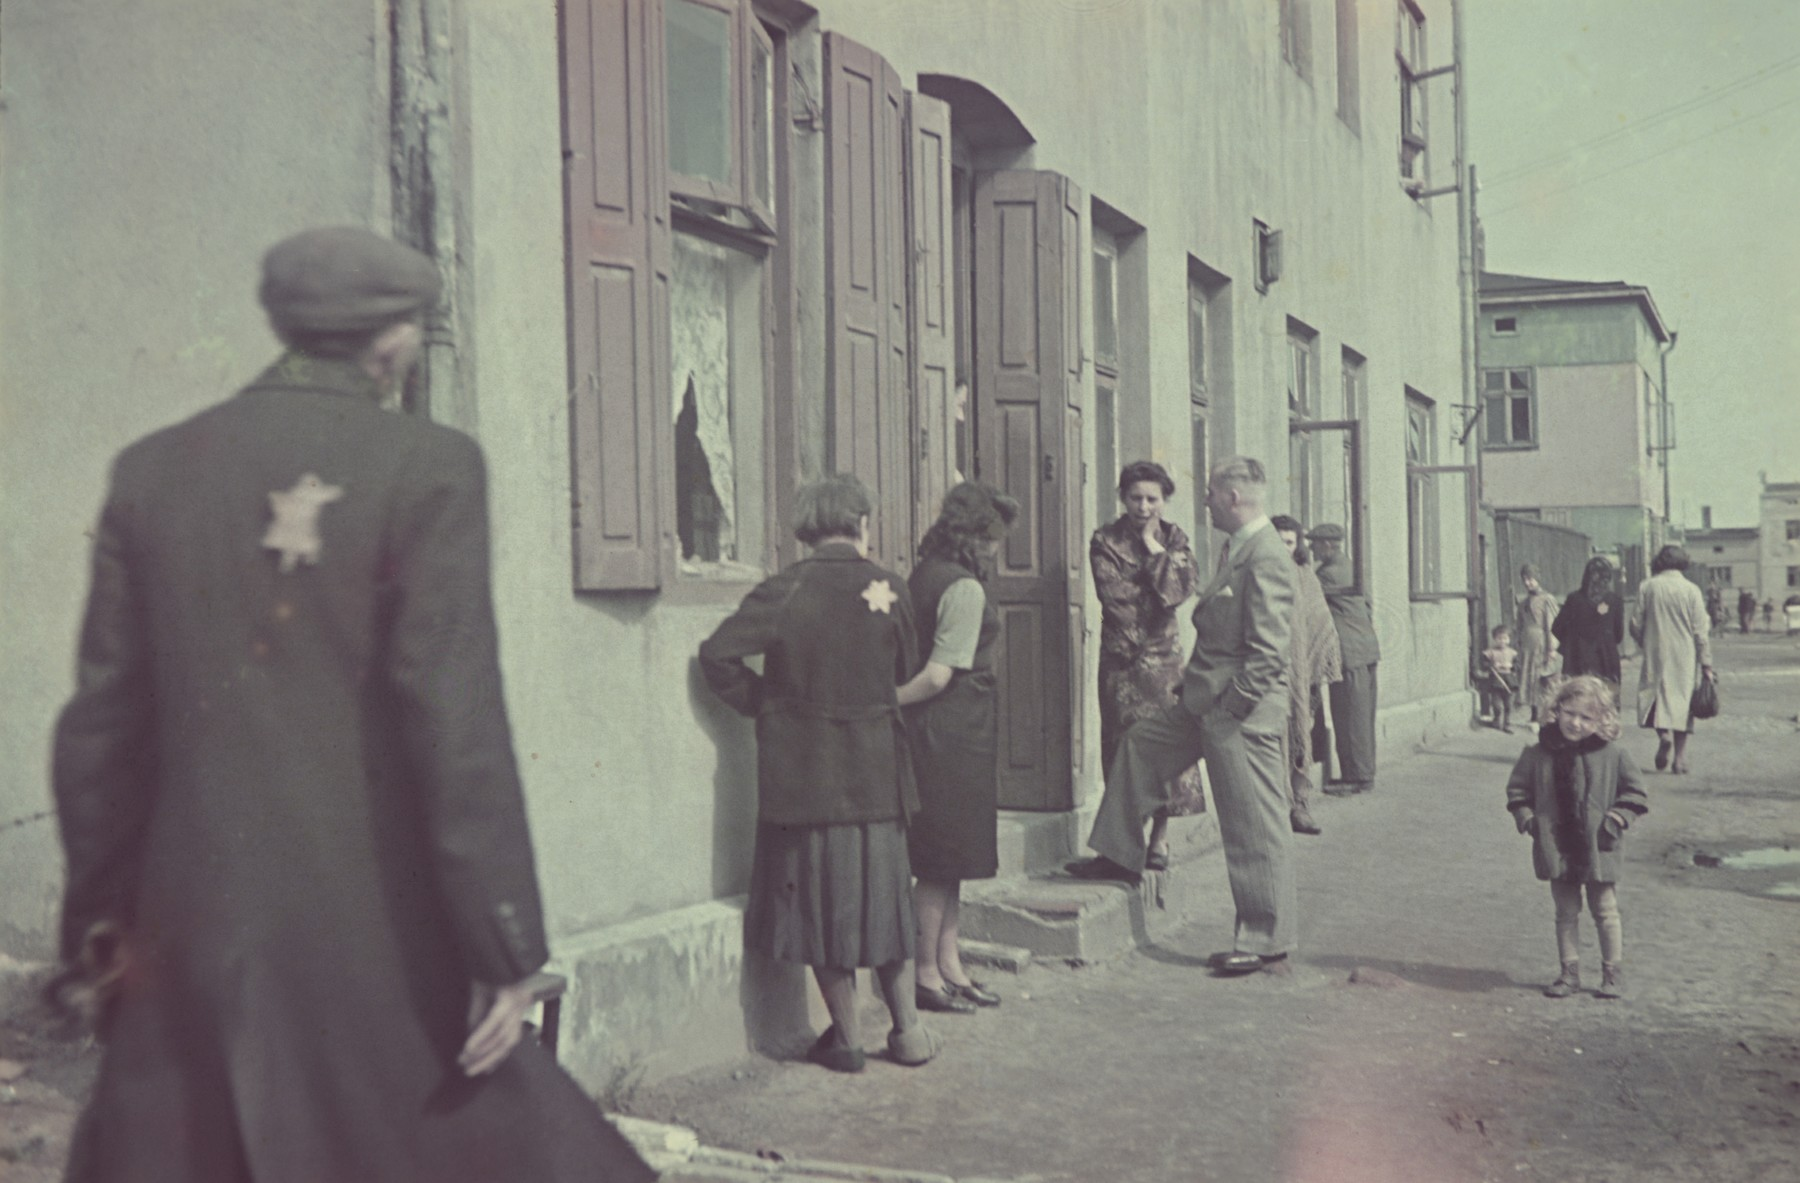 Hans Biebow, German administrator of the Lodz ghetto, talks to a goup of Jewish women on the doorstep of a building in the Lodz ghetto.